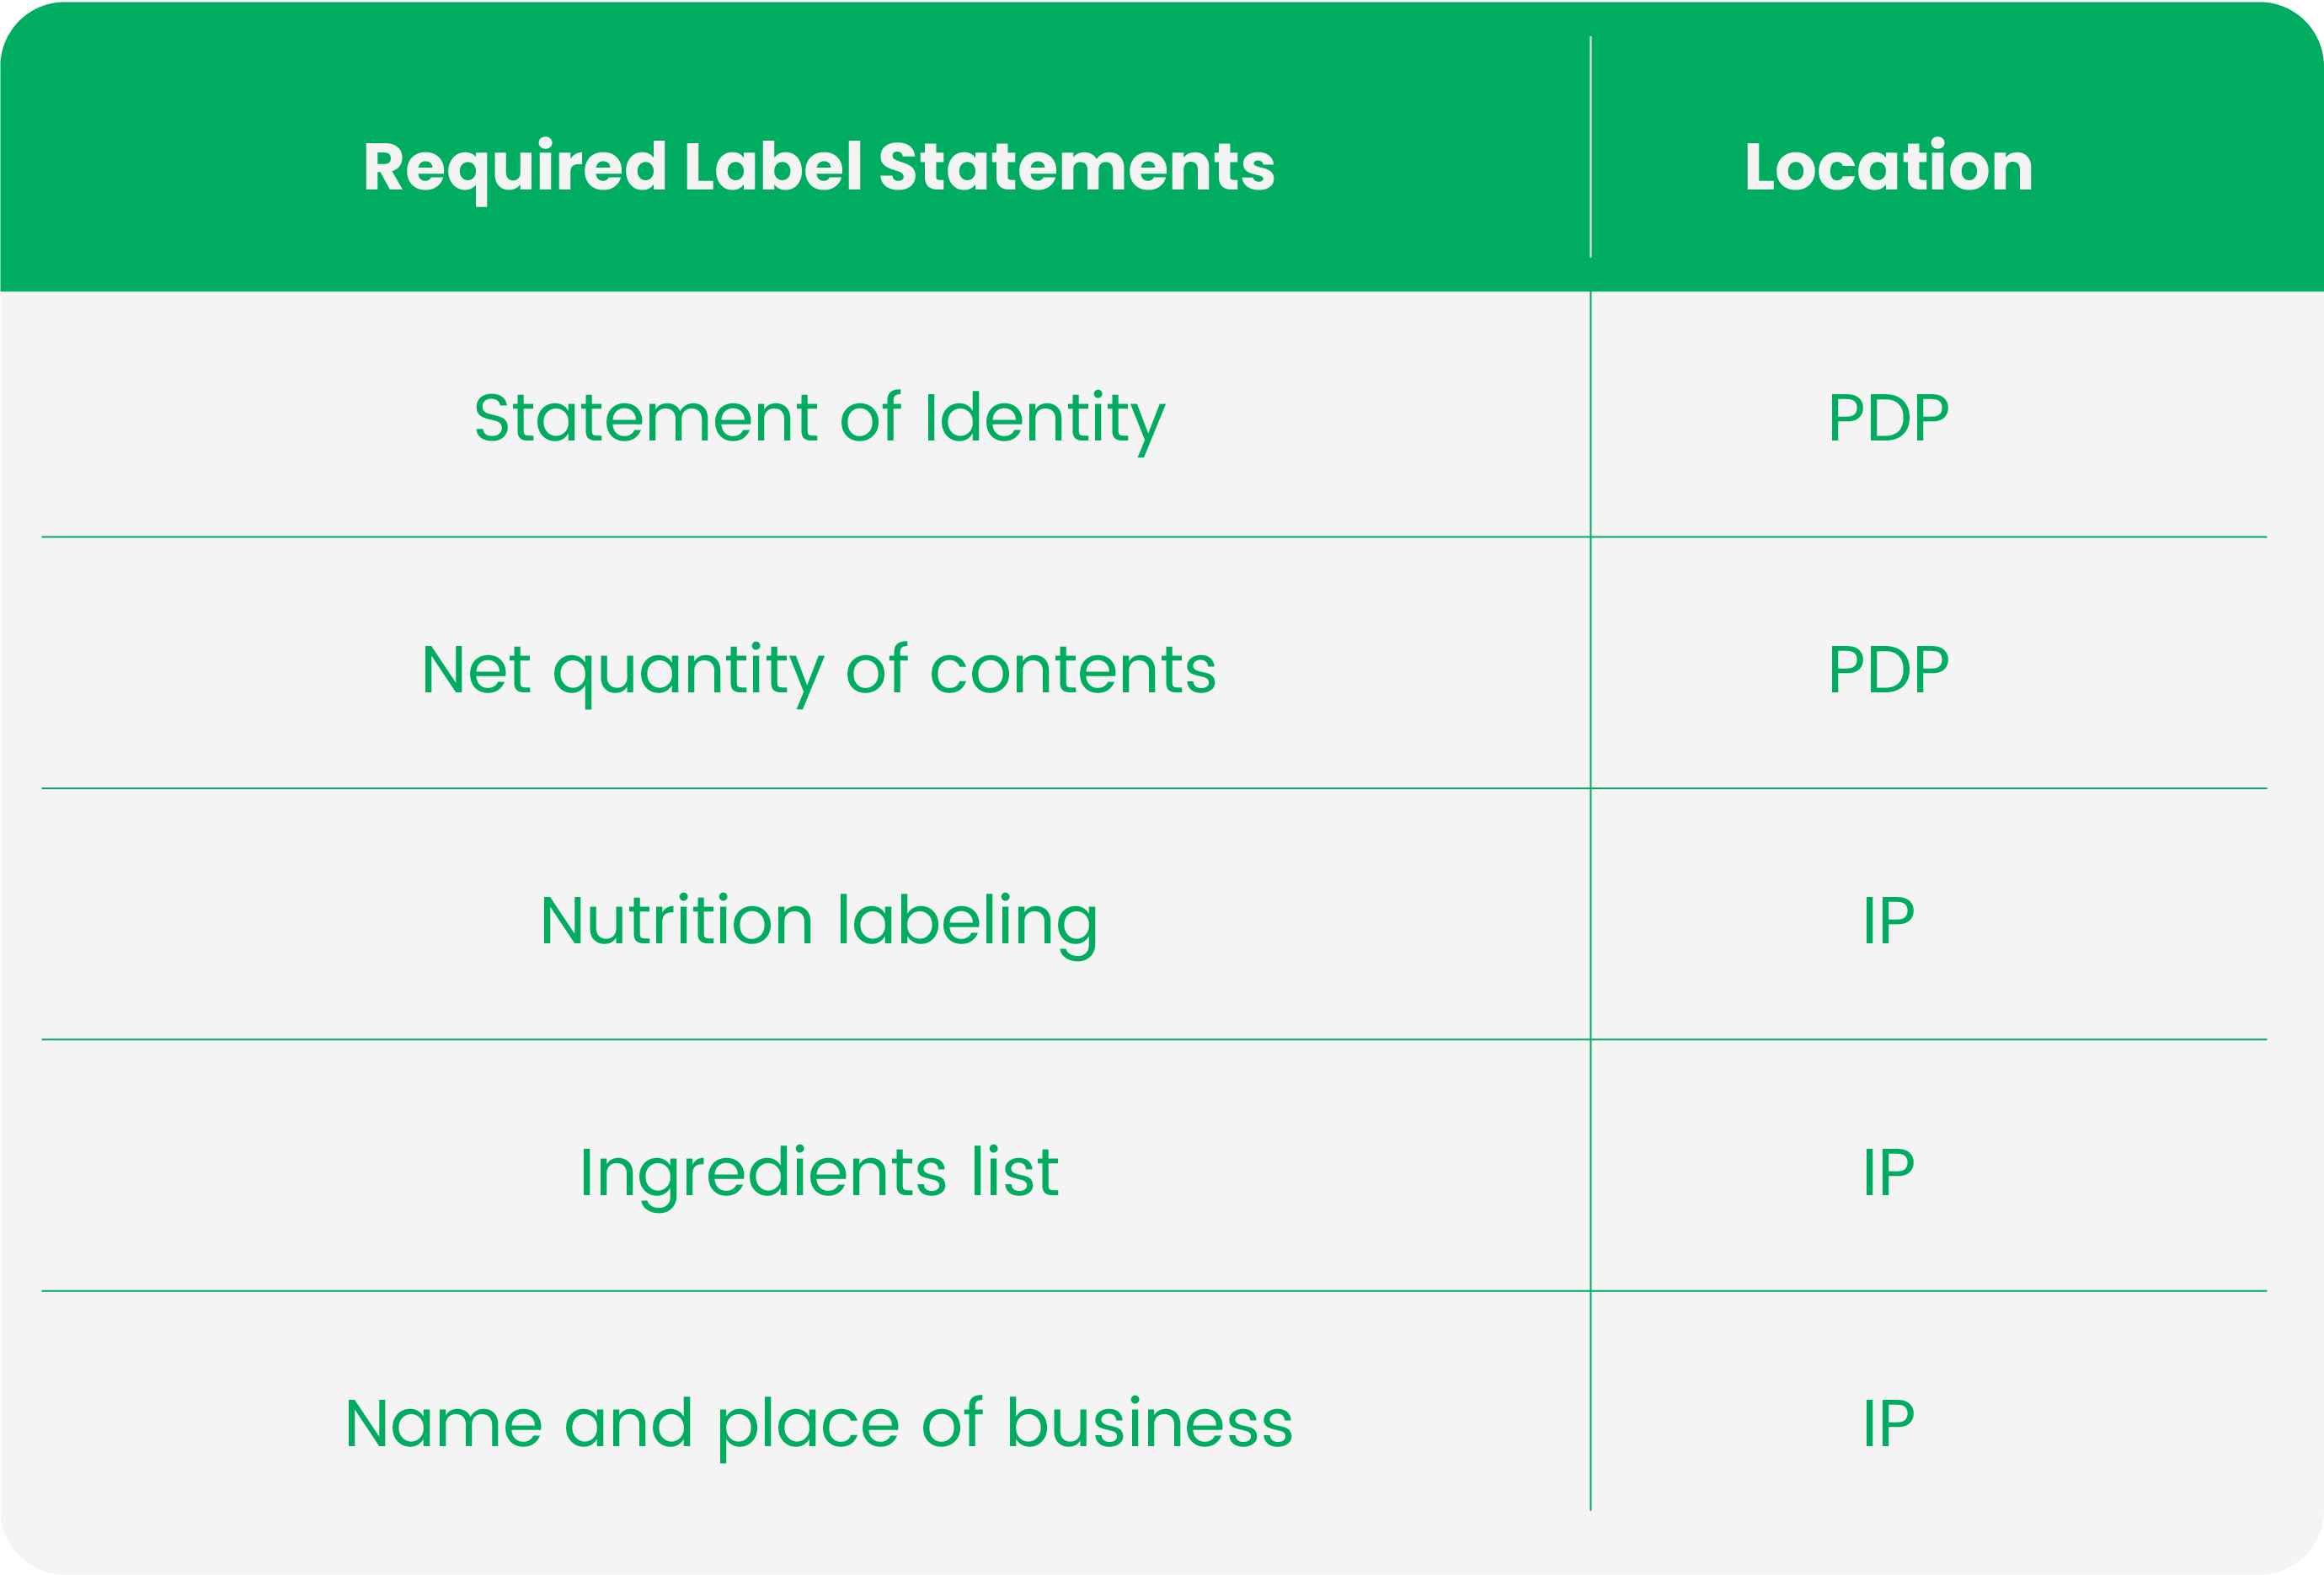 fda label requirements for dietary supplements